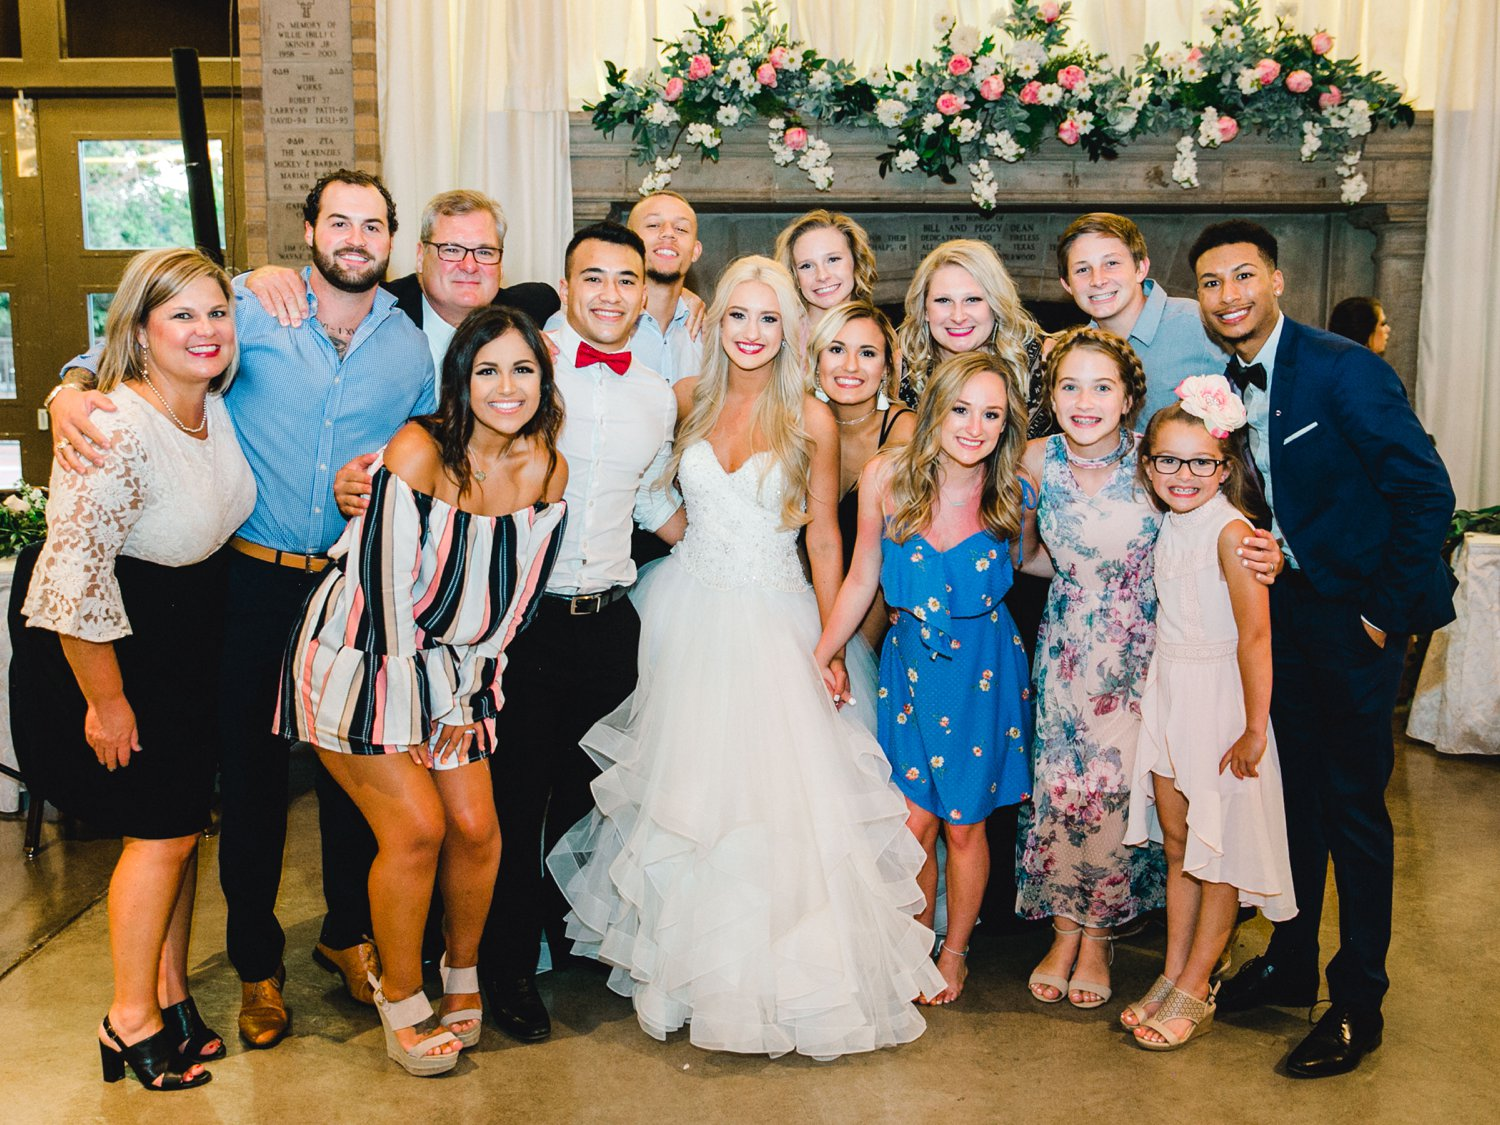 MADI_AND_WILL_STEPHENS_ALLEEJ_LUBBOCK_PHOTOGRAPHER_TEXAS+TECH+FRAZIER_ALUMNI0195.jpg